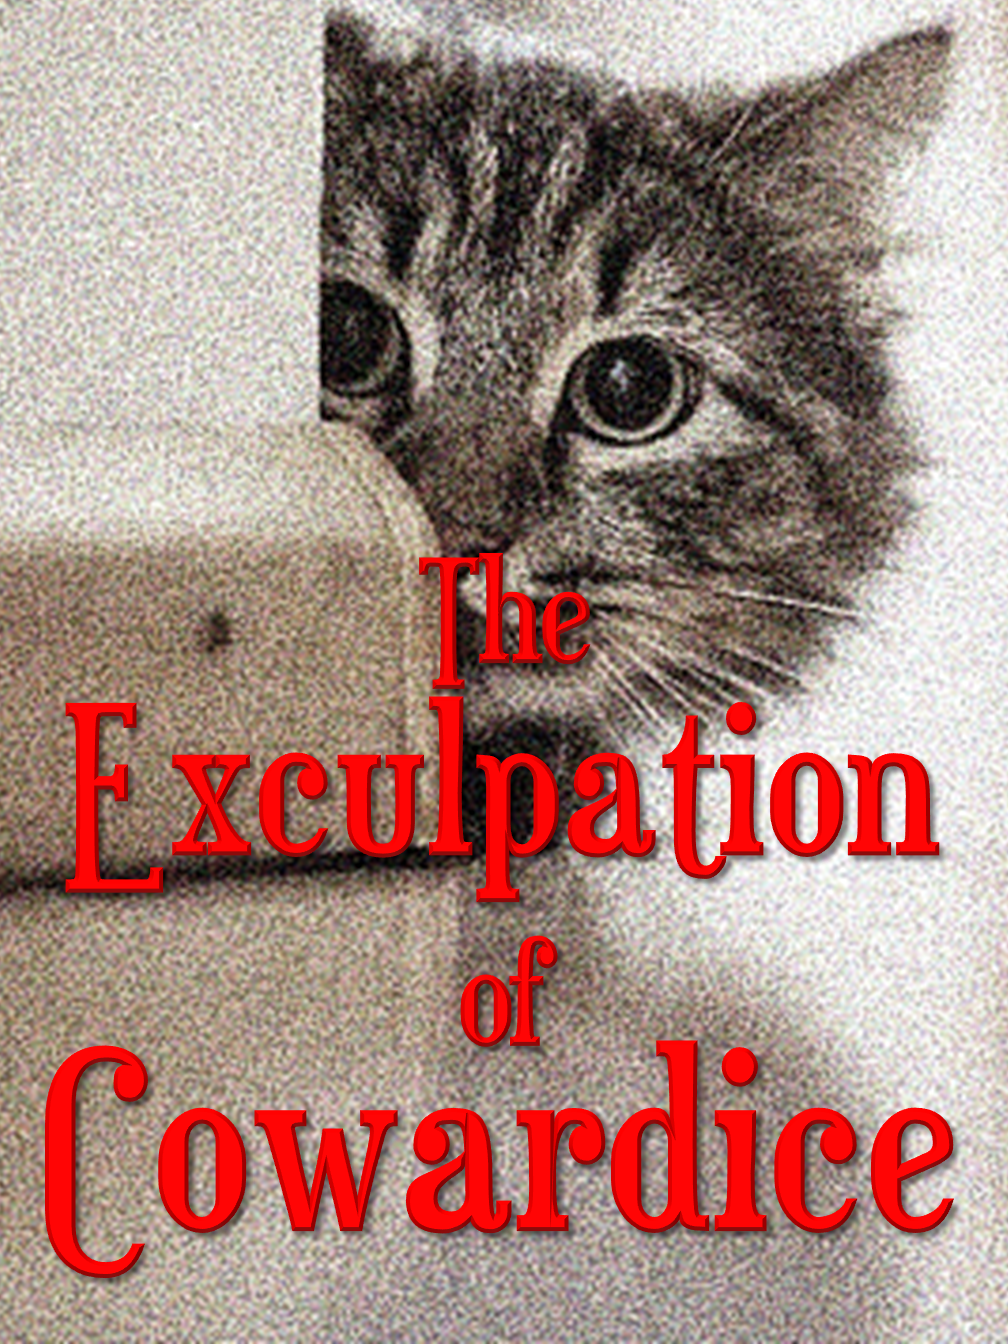 The Exculpation of Cowardice